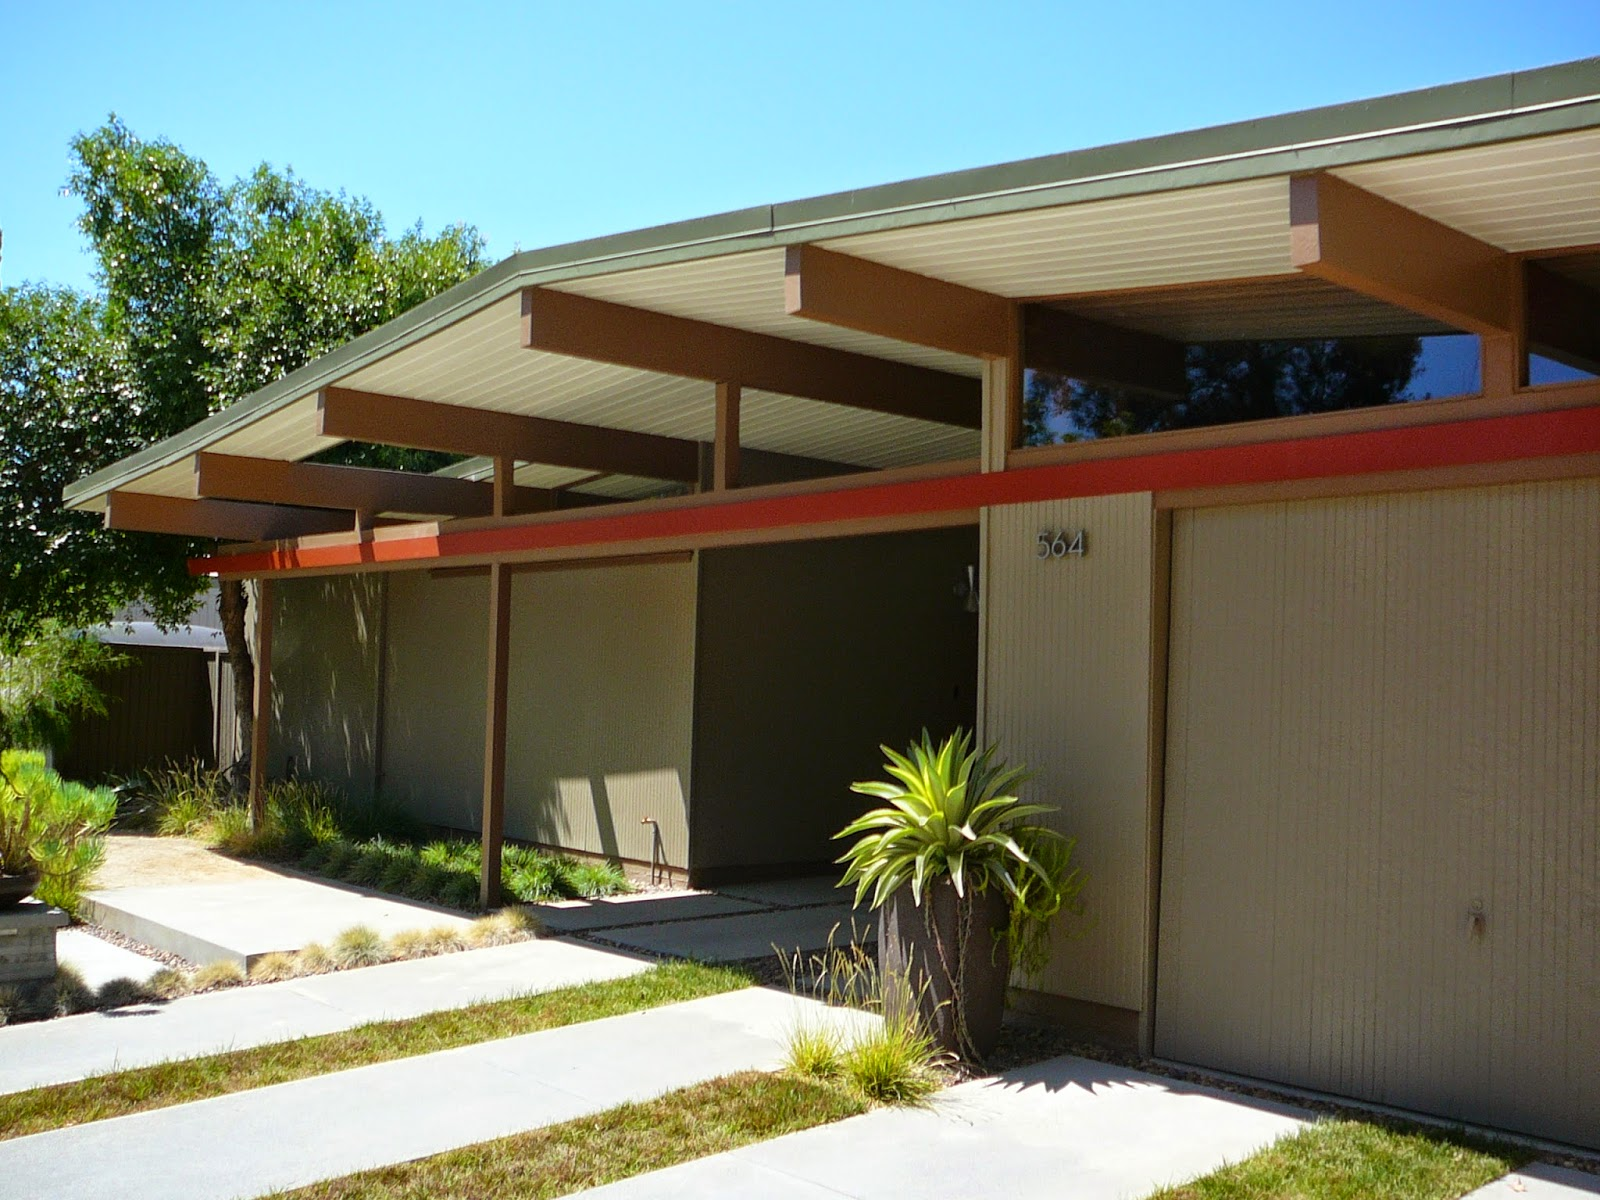 Orange County Structure Unique Eichler Houses Are In High